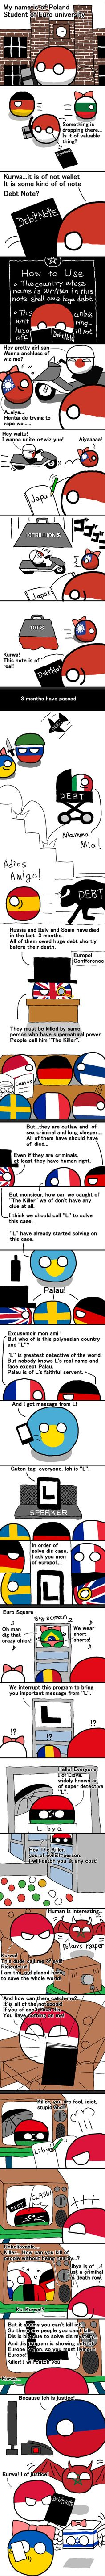 Debt Note (complete) - Polandball | ^ https://de.pinterest.com/pin/44684221282141793/